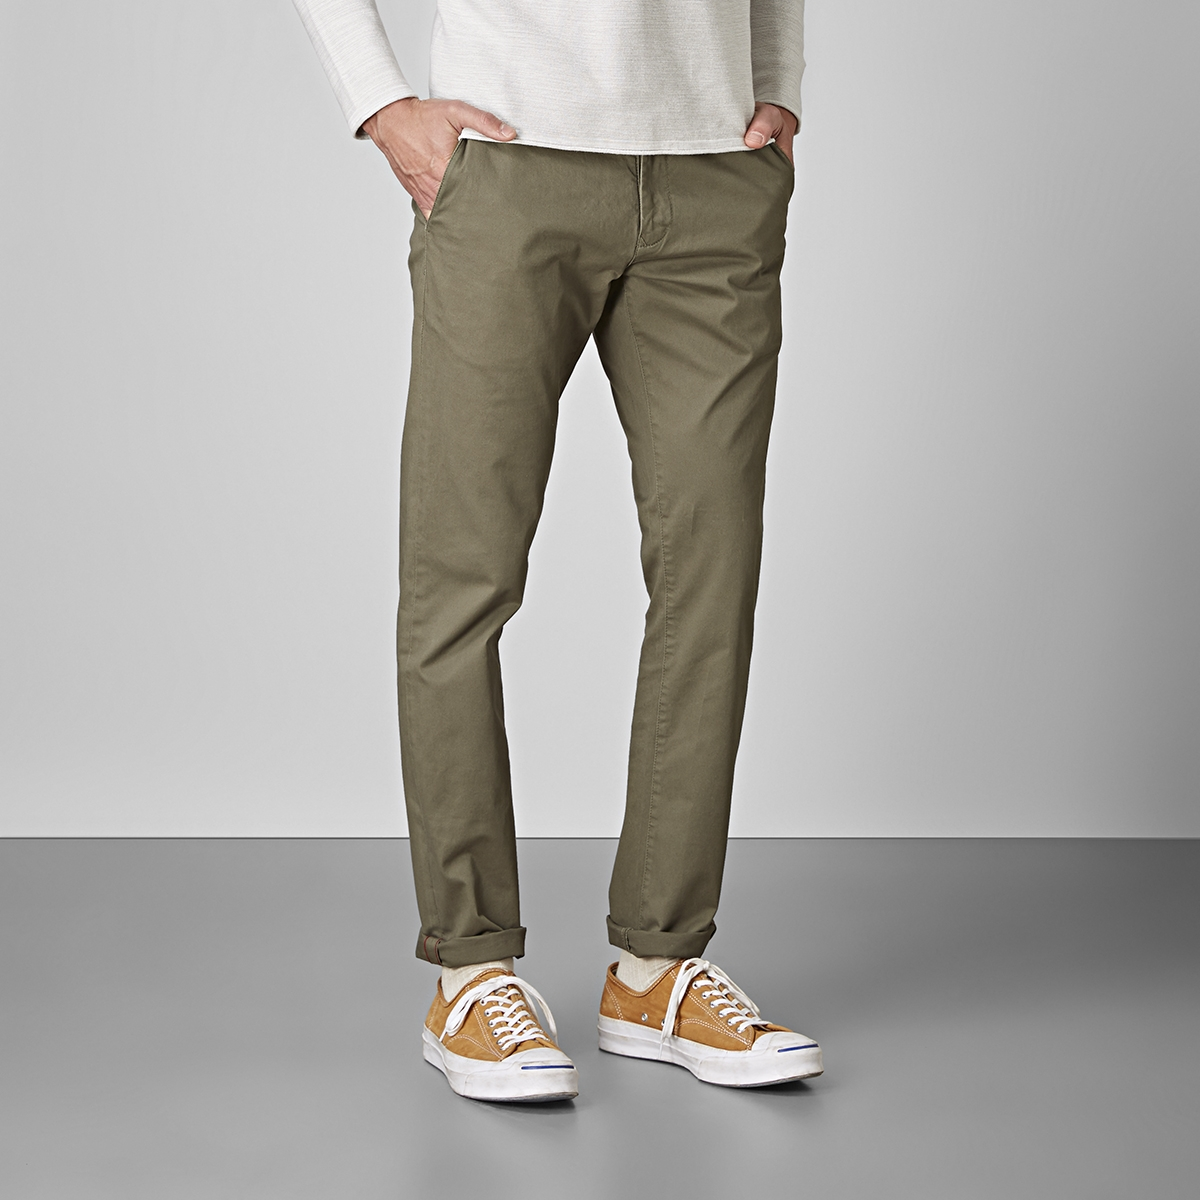 Bowery stretch chinos olivgrön